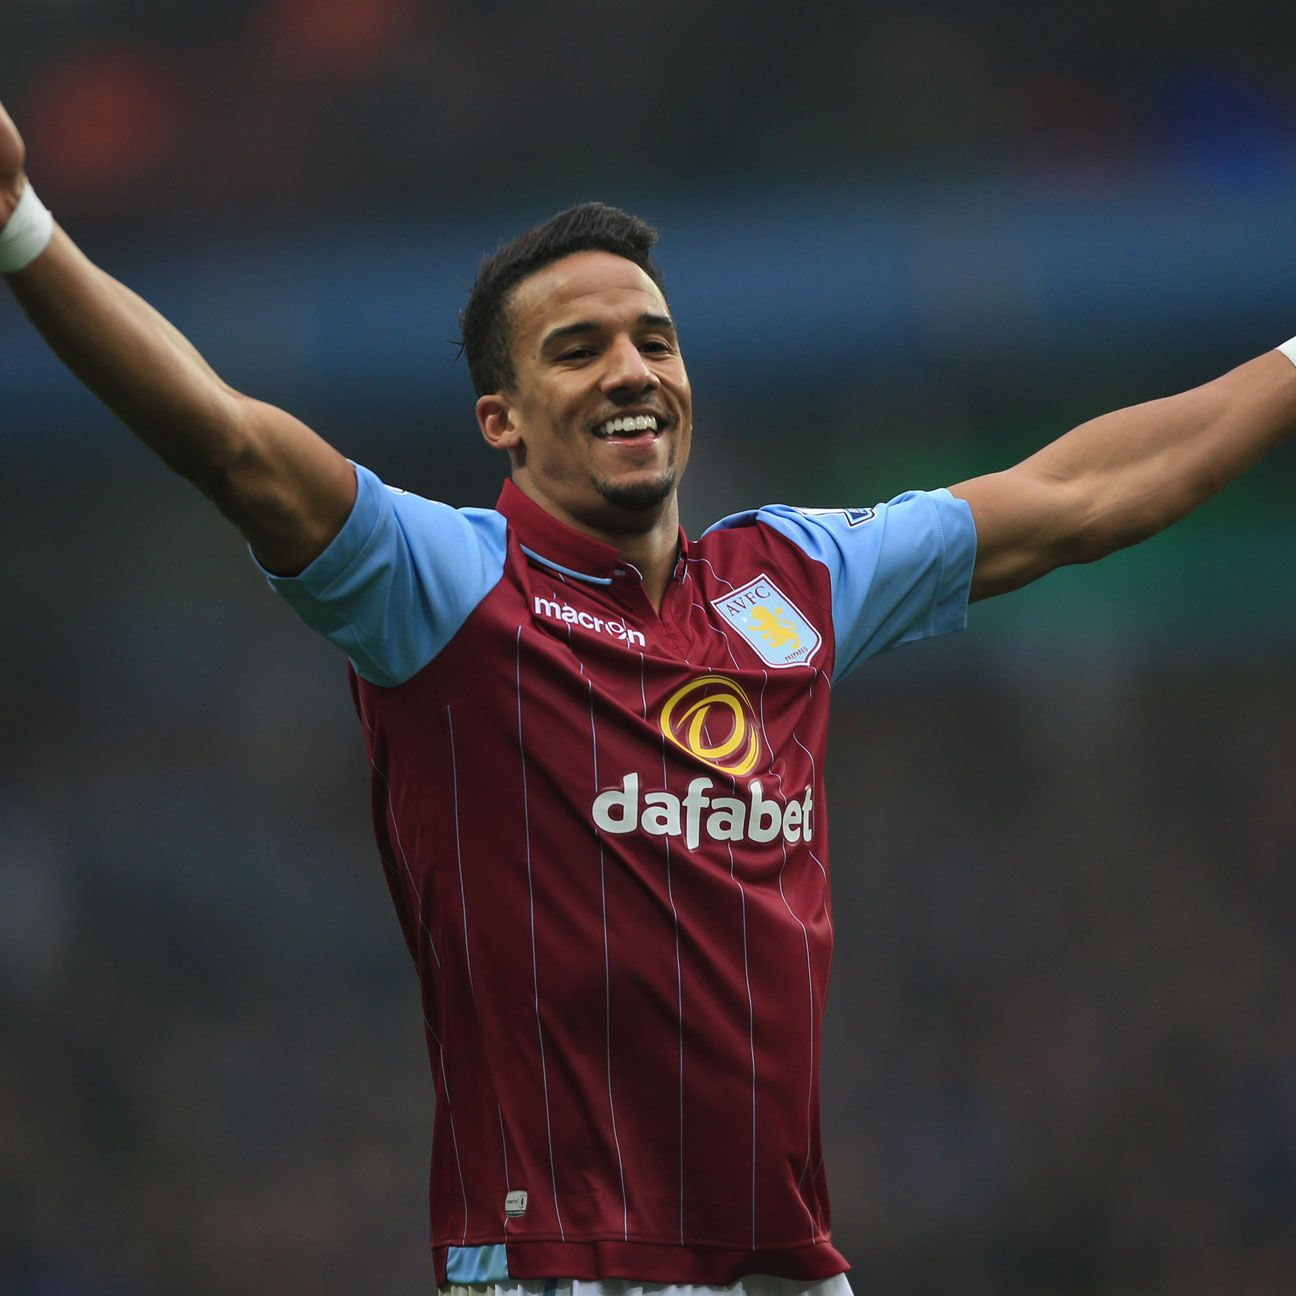 With Villa in search of a man to score goals, Scott Sinclair could be just the answer Tim Sherwood needs.